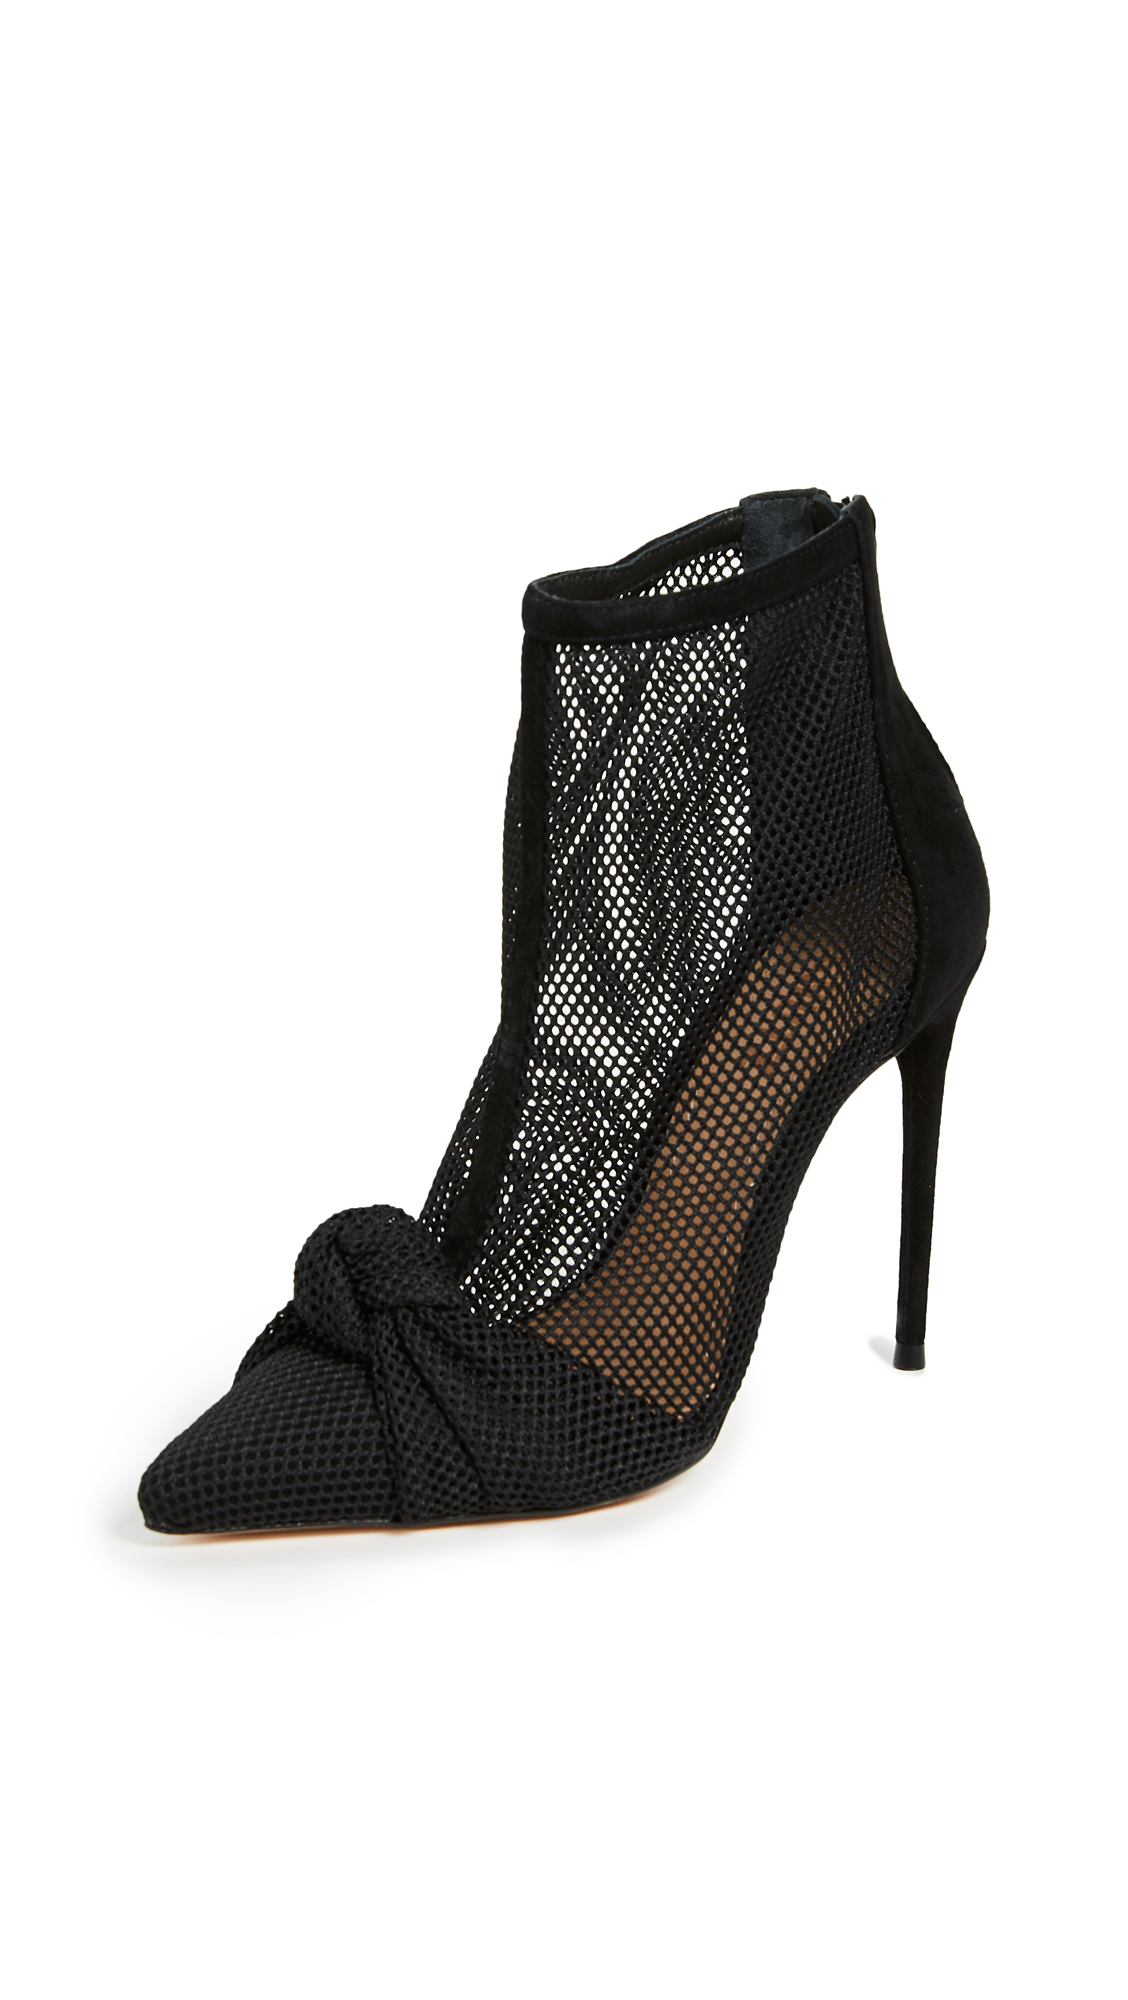 SCHUTZ Kessie Point Toe Booties in Black